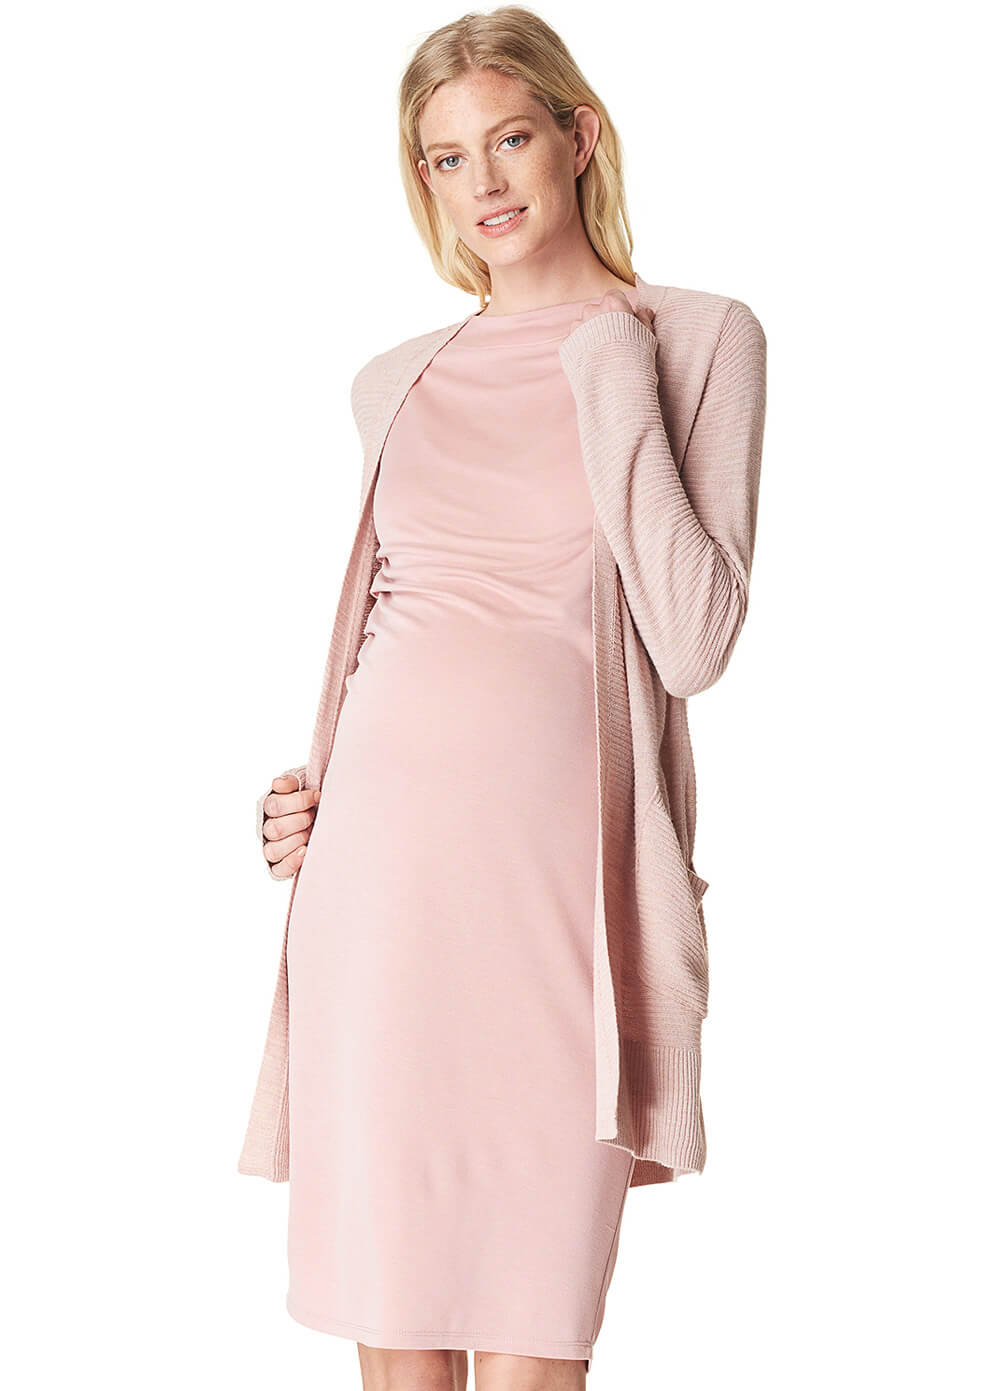 Annefleur Maternity Dress in Blush by Noppies